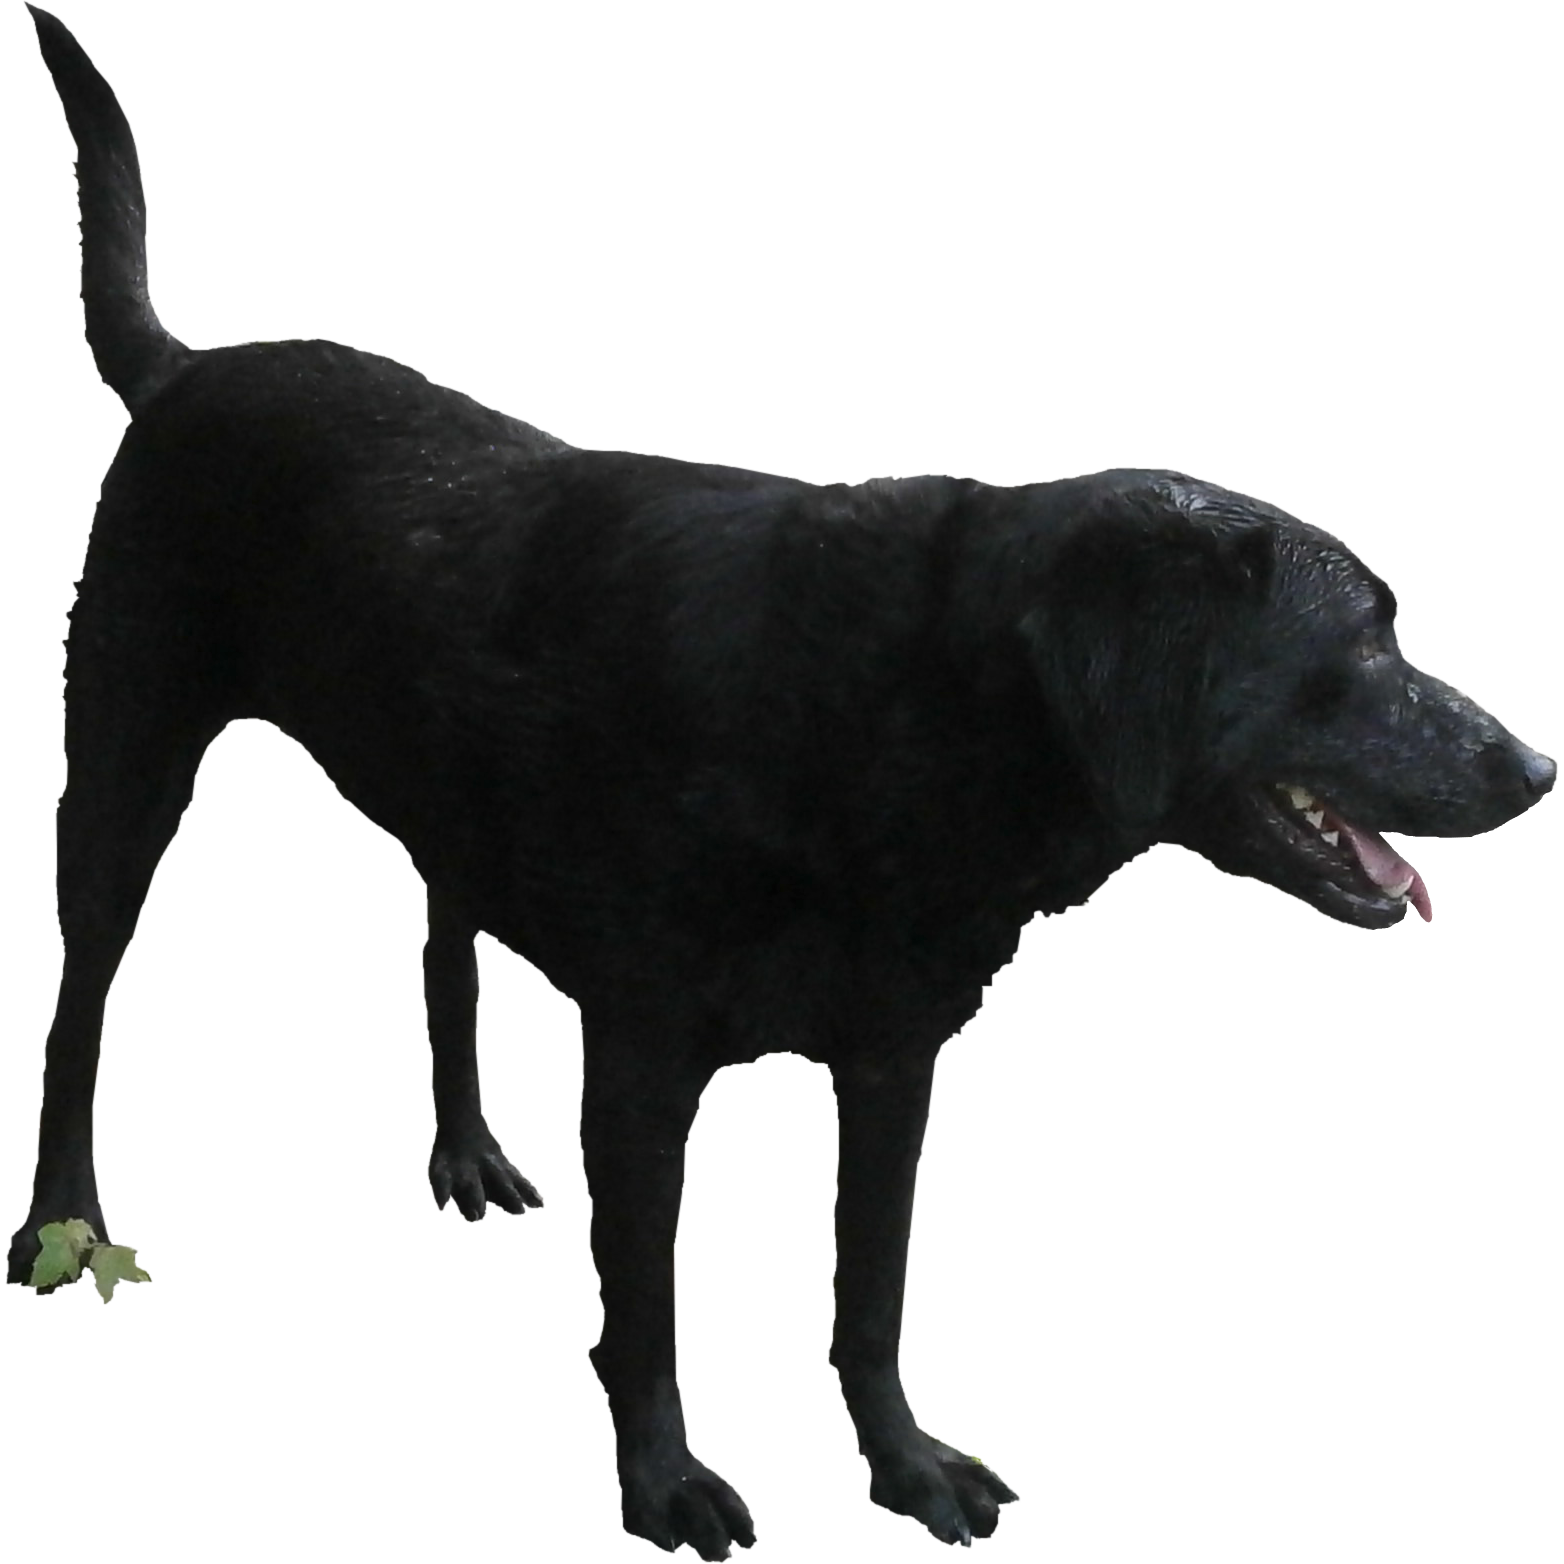 Black Dog HD Image 9113